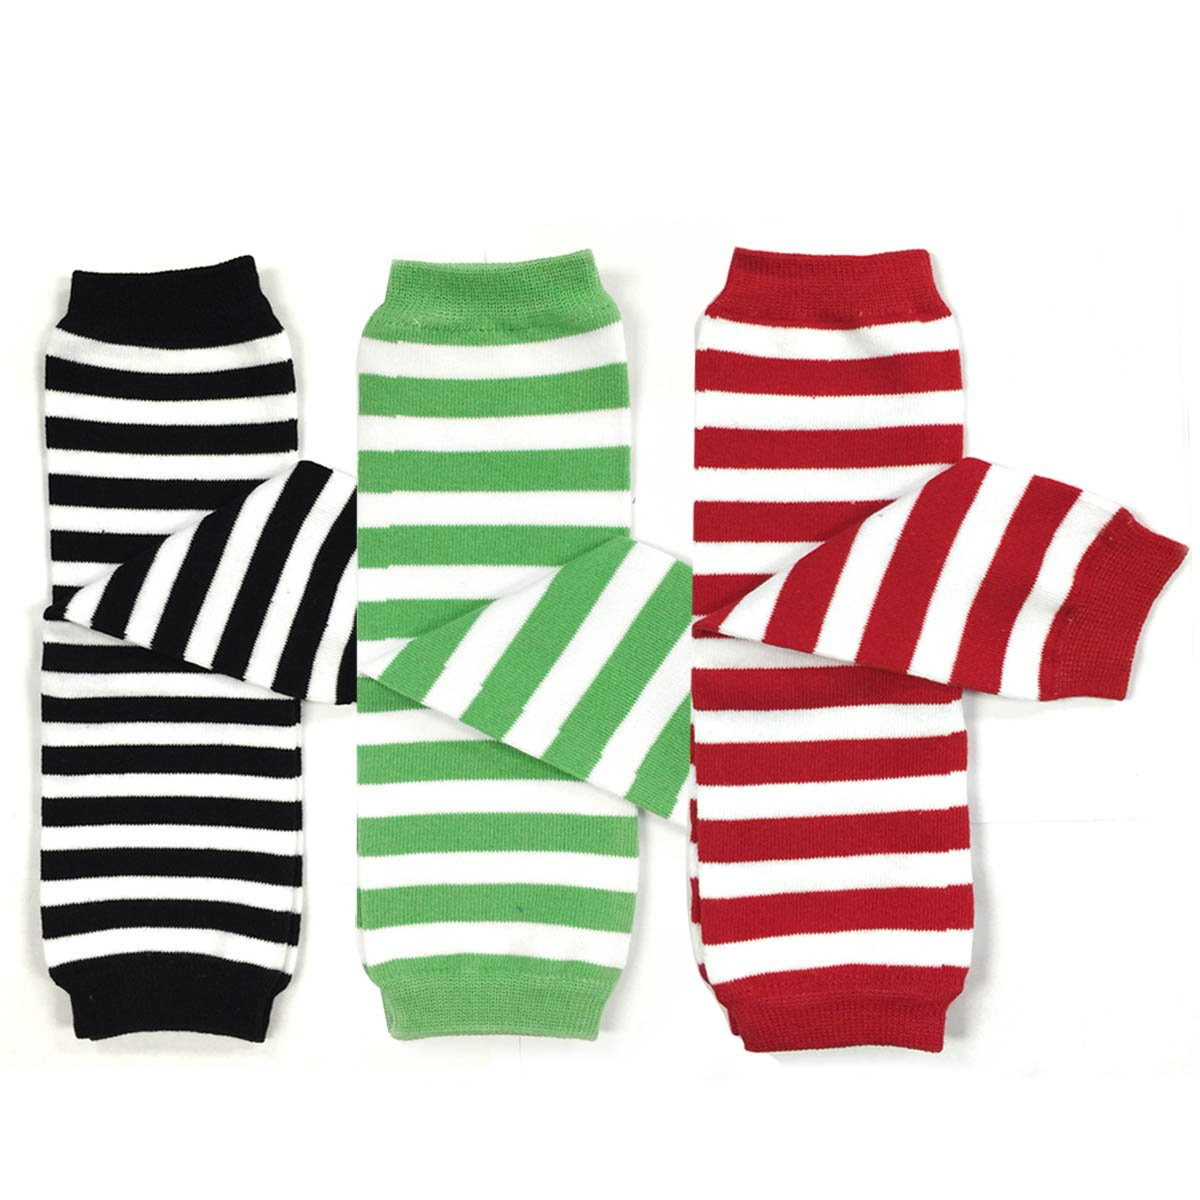 Red Green Bowbear Baby 3-Pair Leg Warmers Stripes in Black